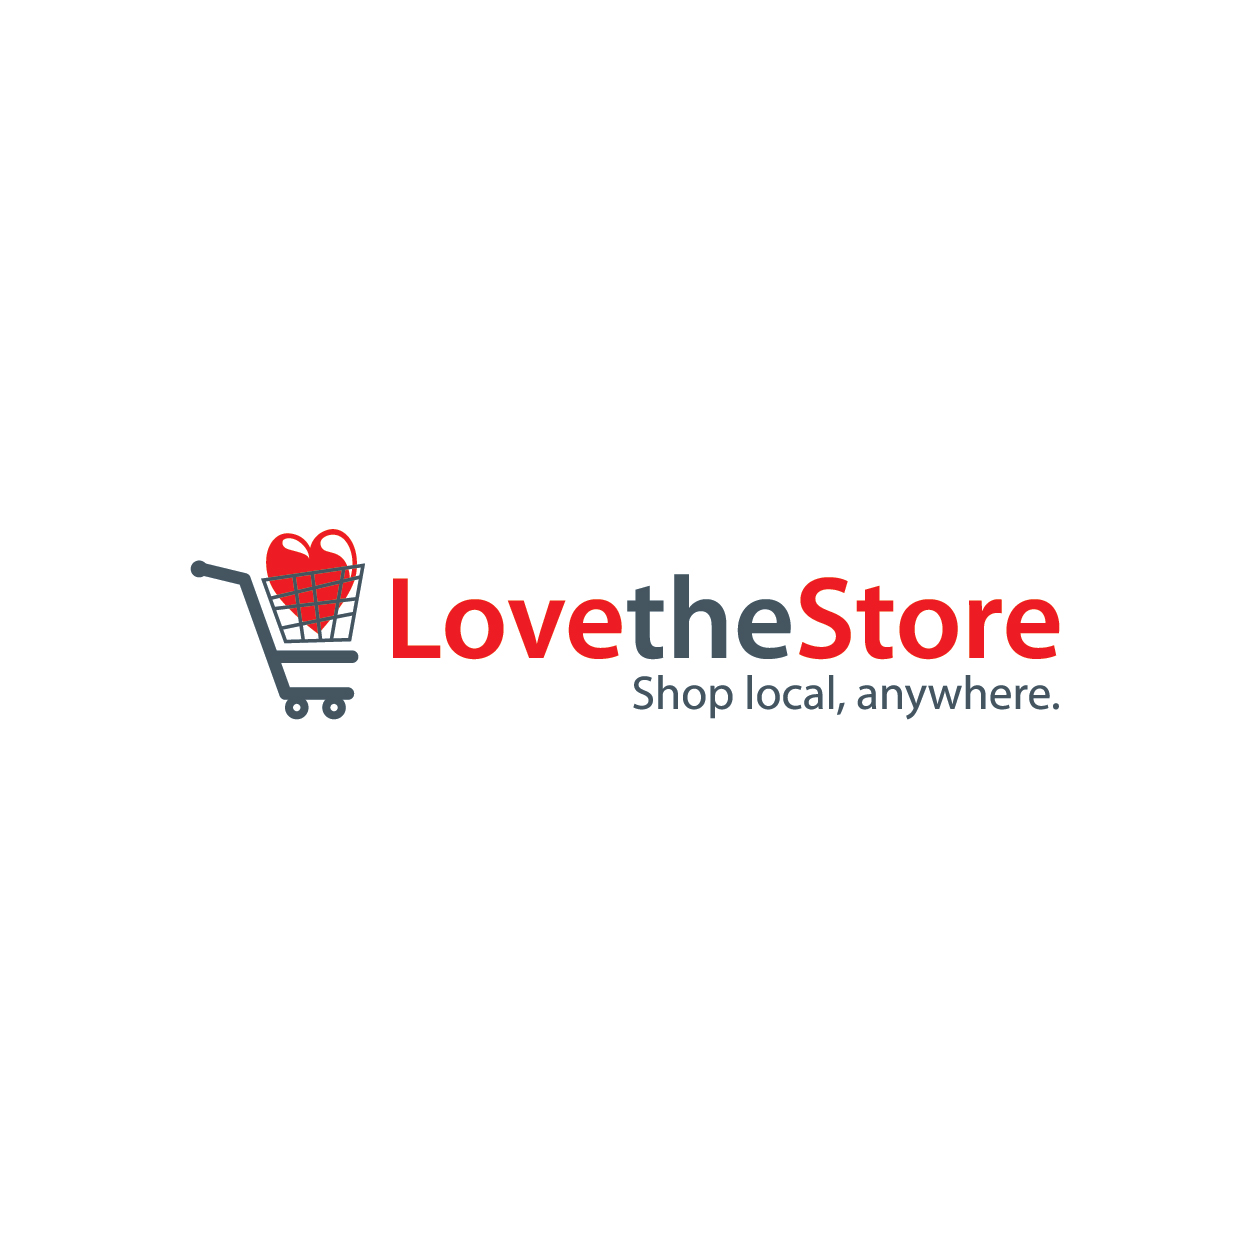 Logo Design by Josephope Sardalla - Entry No. 15 in the Logo Design Contest Logo for online retail aggregator website.